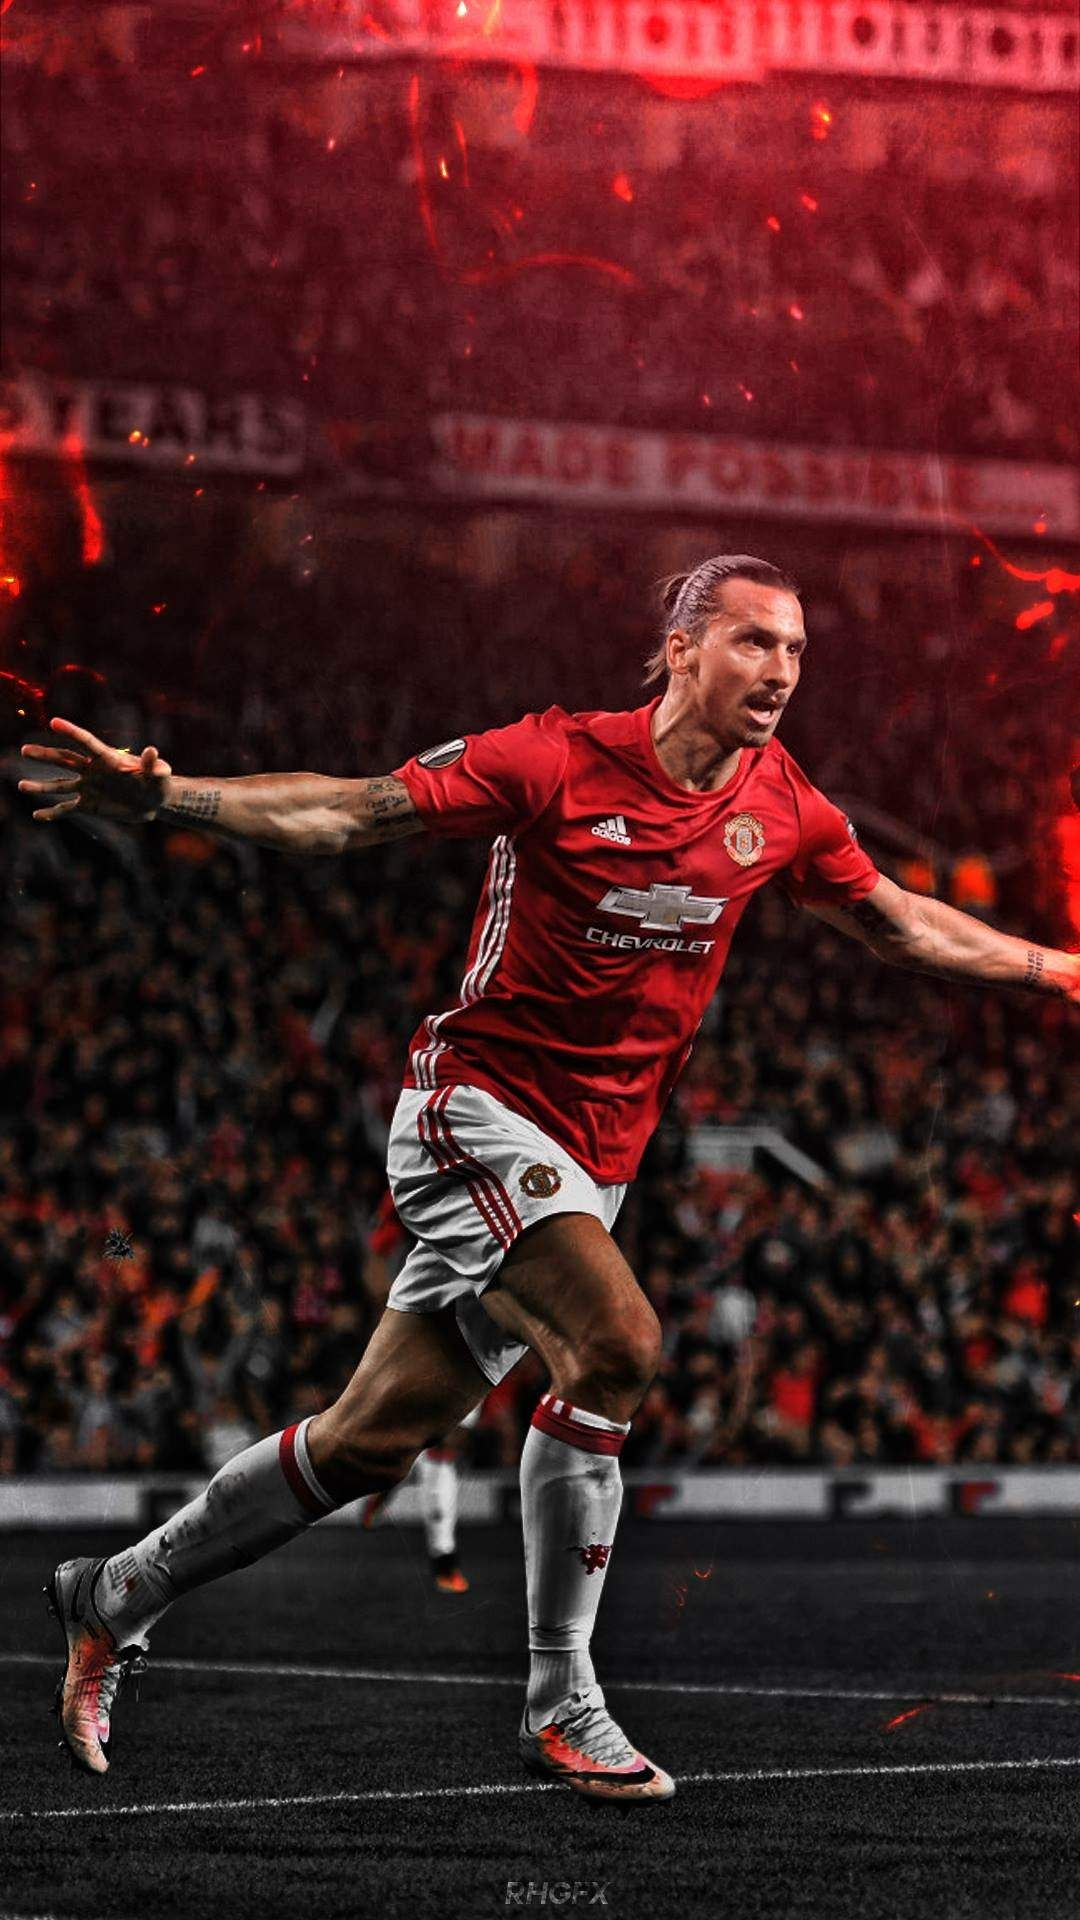 Pin De Shaharath Nv Em Sports Em 2020 Ibrahimovic Wallpapers